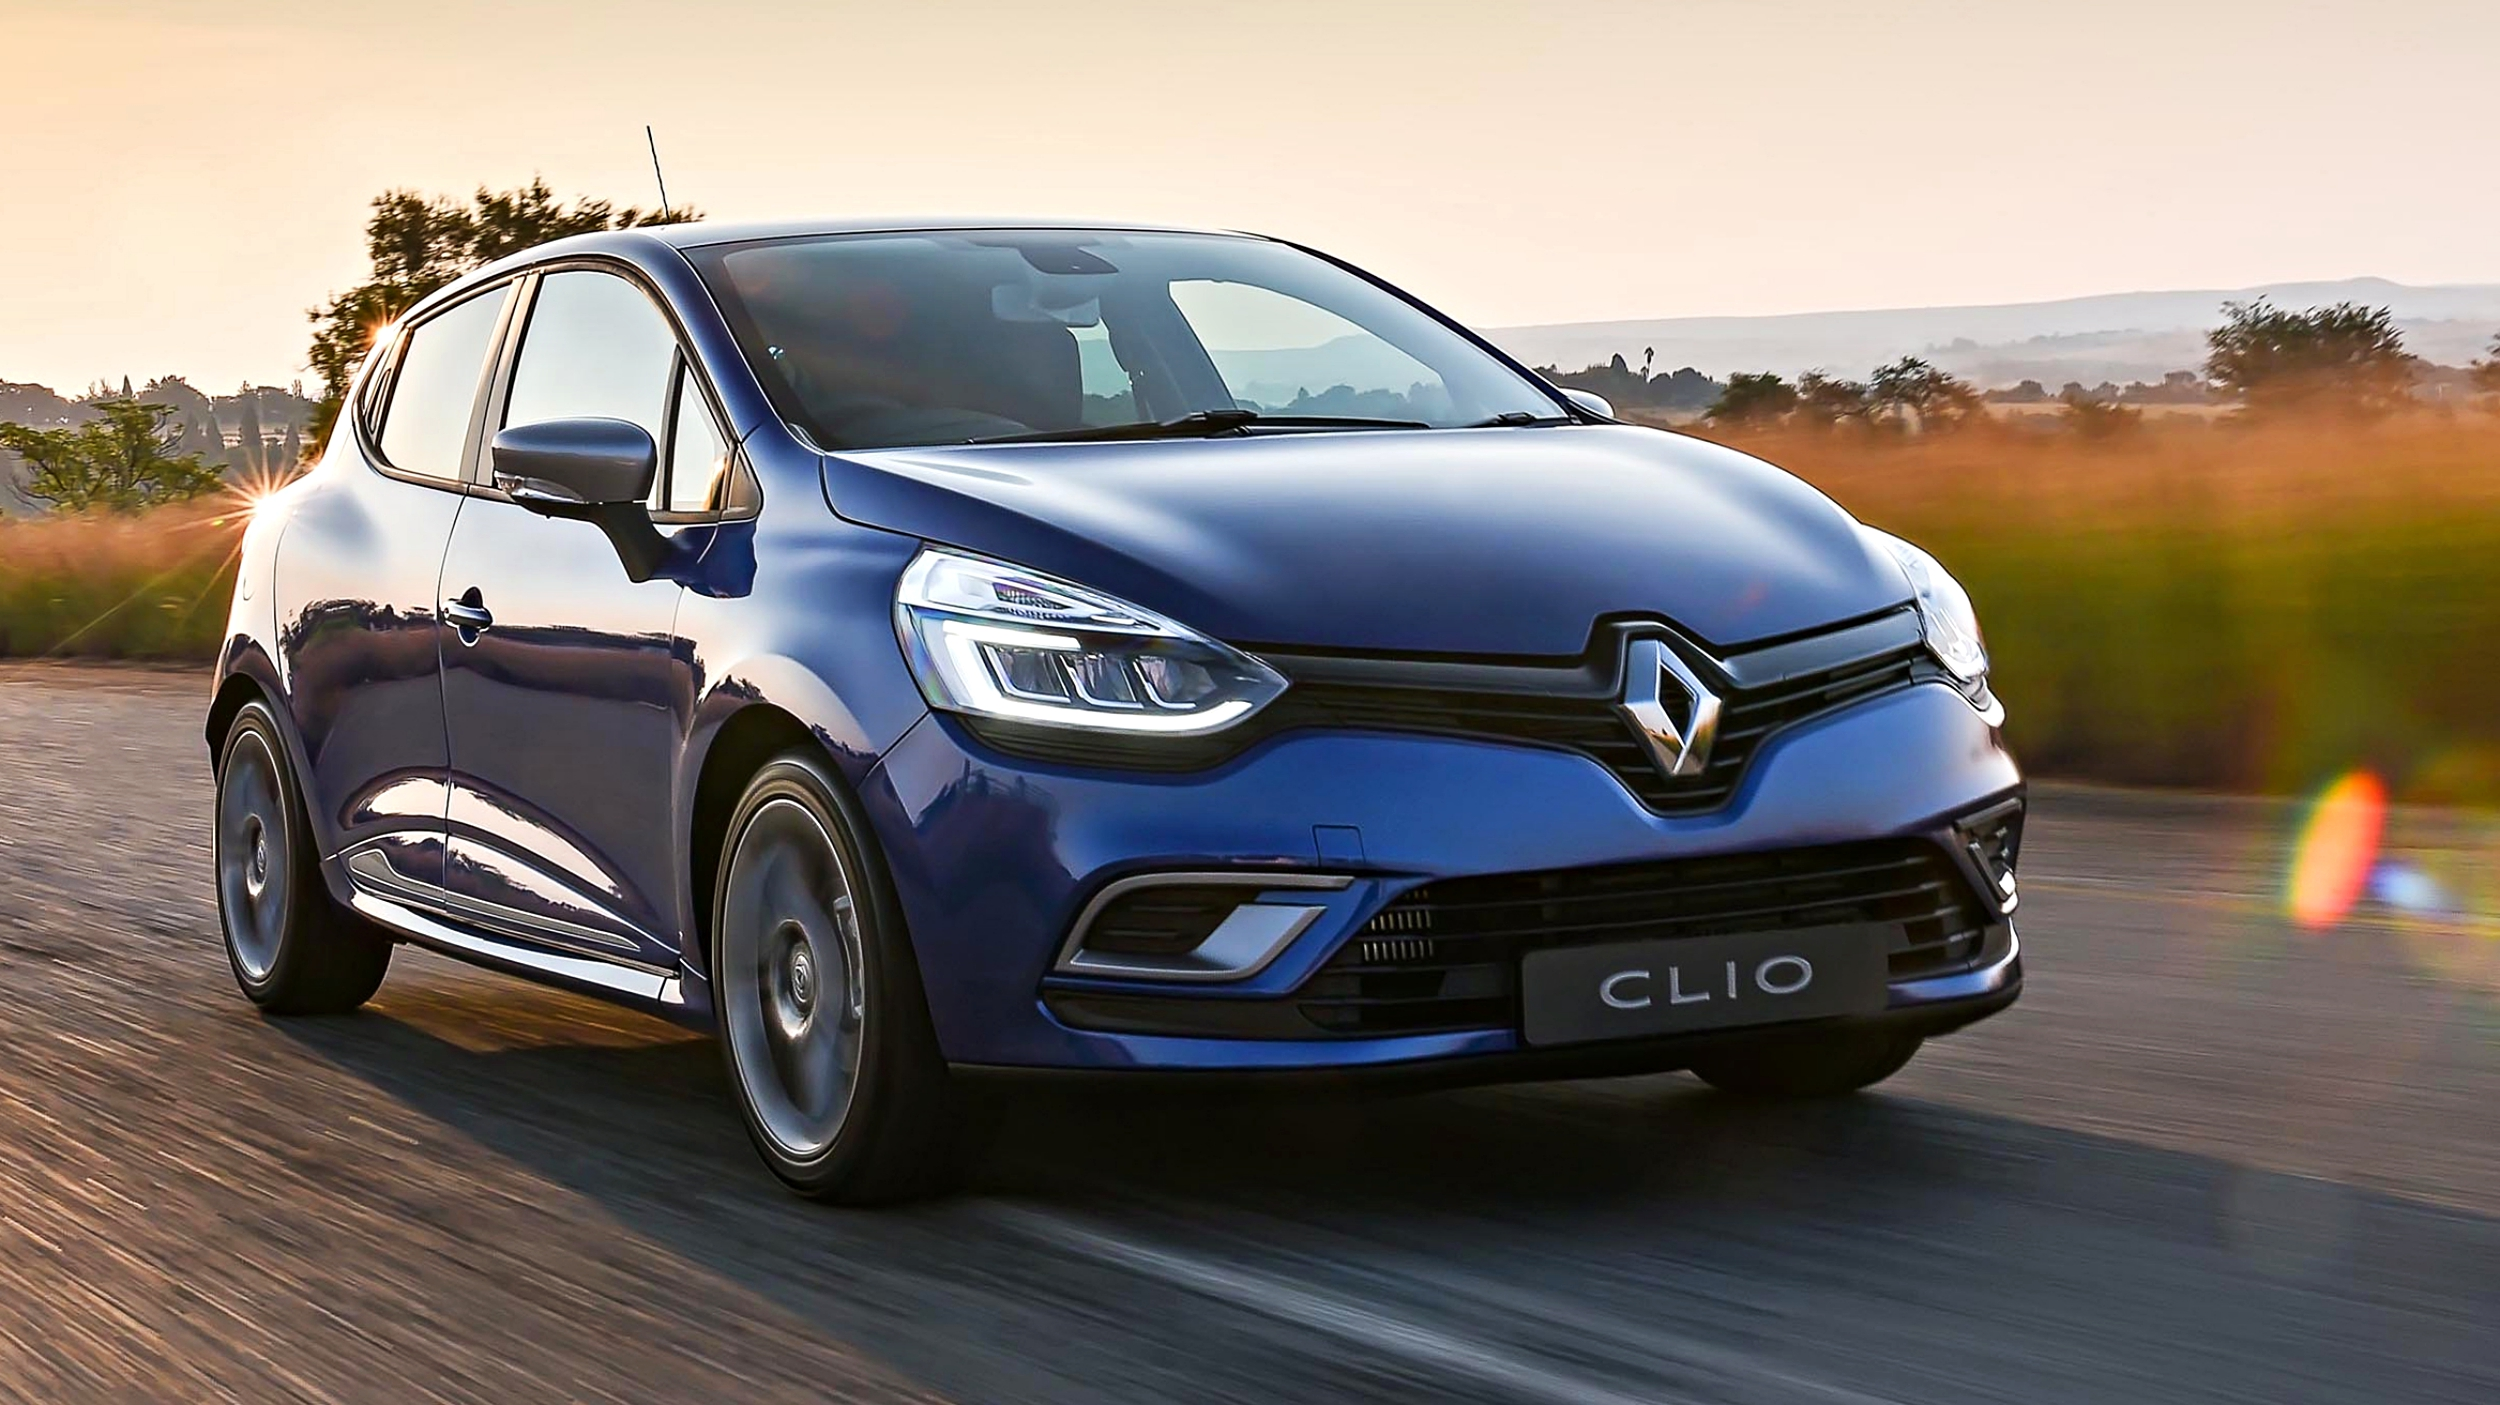 news 2019 renault clio to carry major tech emphasis report. Black Bedroom Furniture Sets. Home Design Ideas